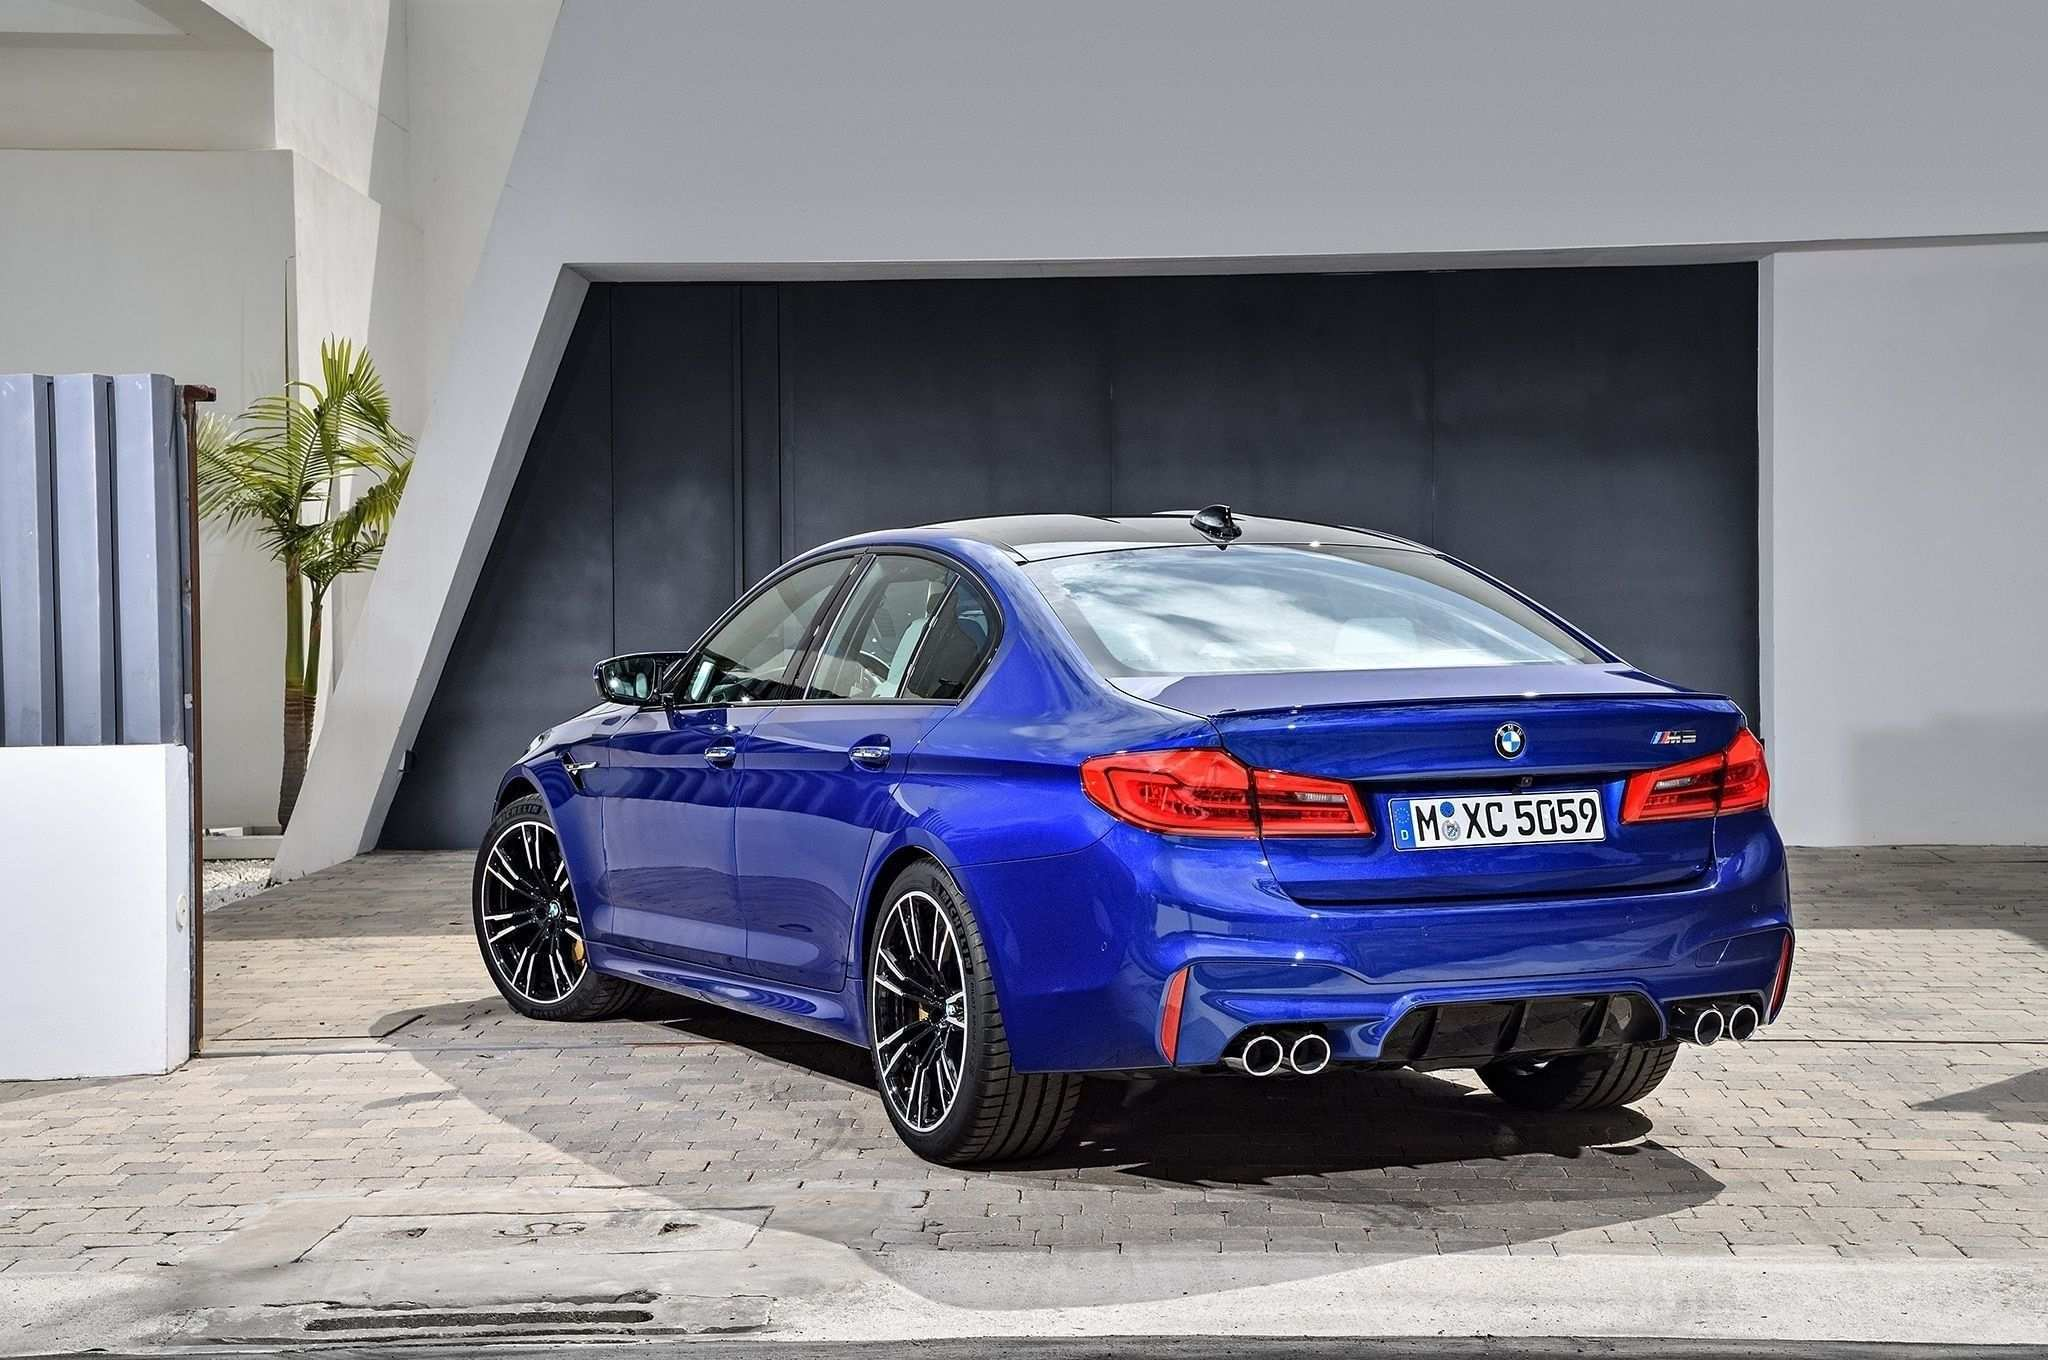 54 Great Bmw M5 Redesign Exterior and Interior by Bmw M5 Redesign